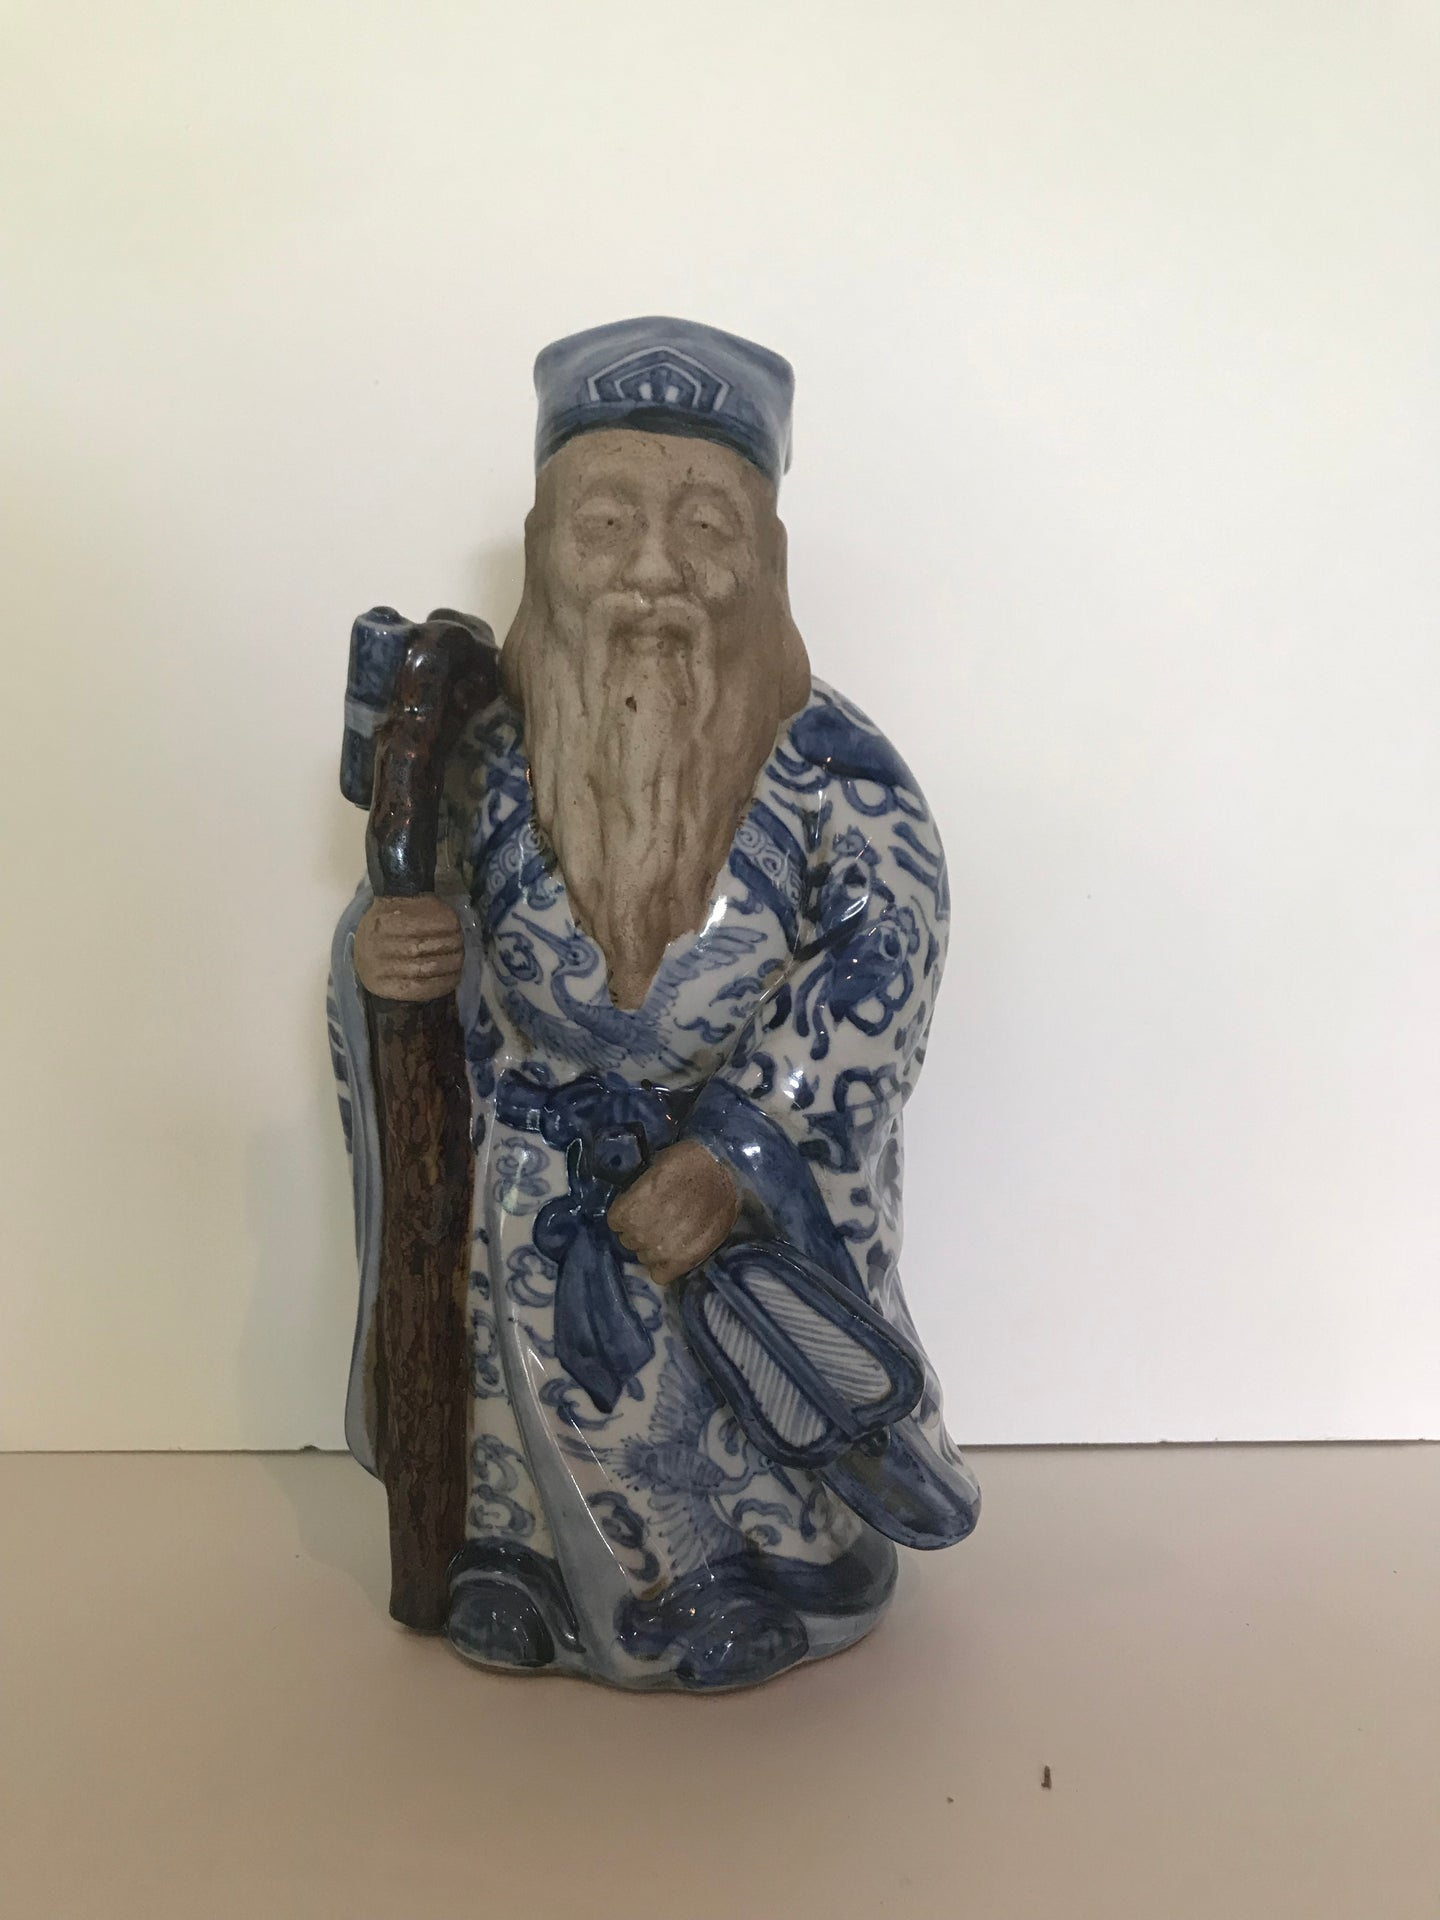 Blue and White Decorative Asian man statue - The Sweetwood Collection